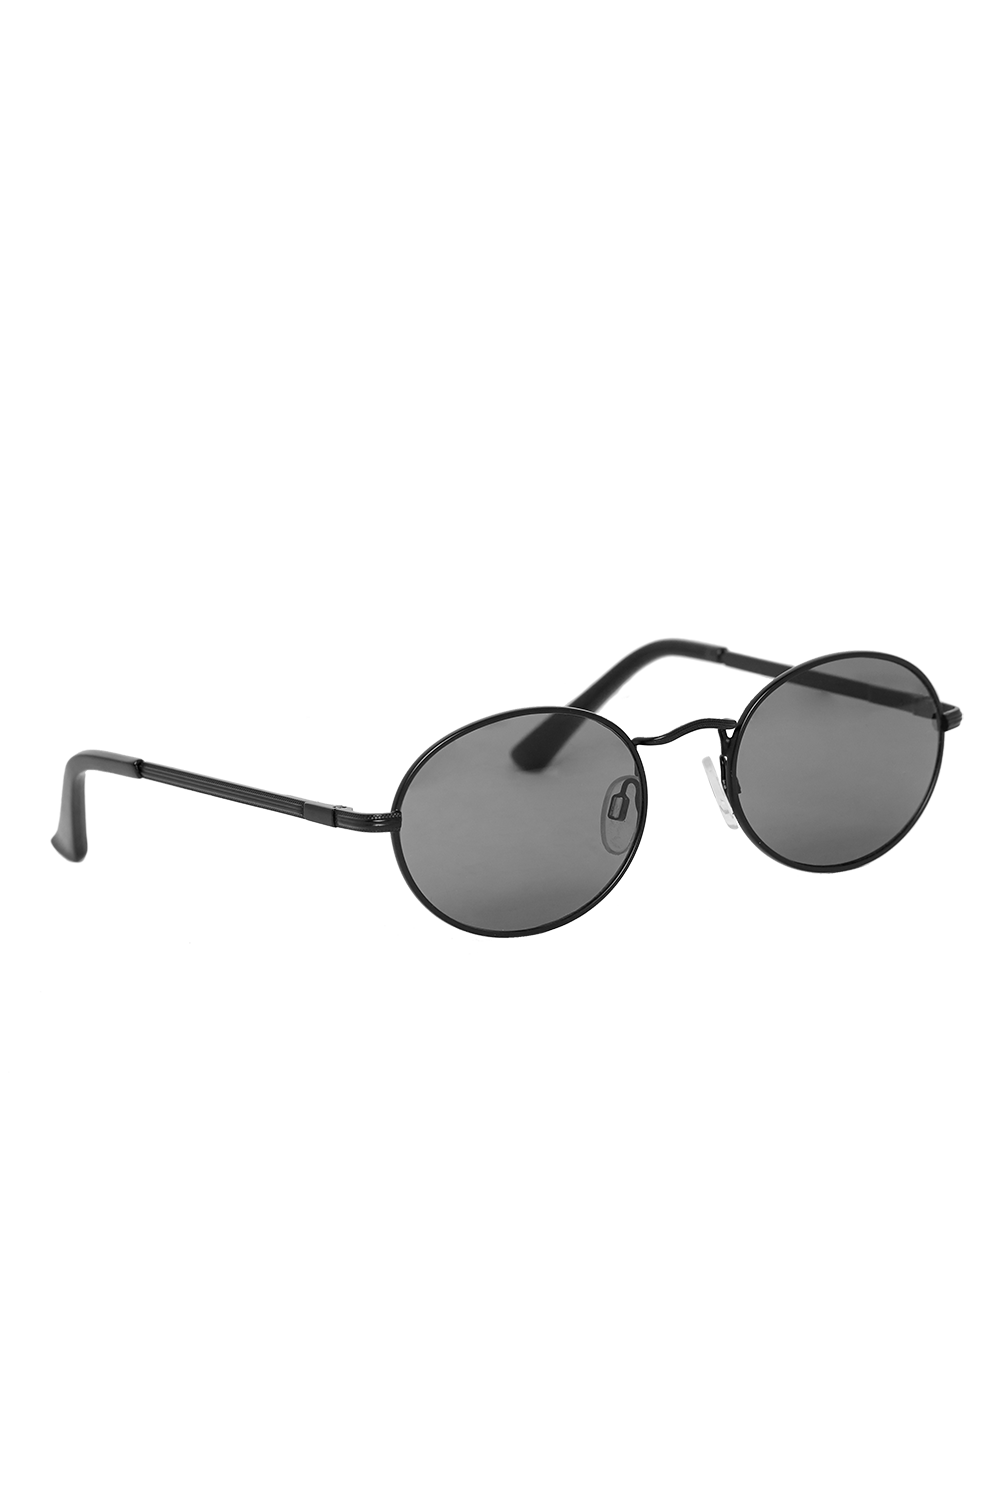 e86f5ed462a OVAL METAL SUNGLASSES